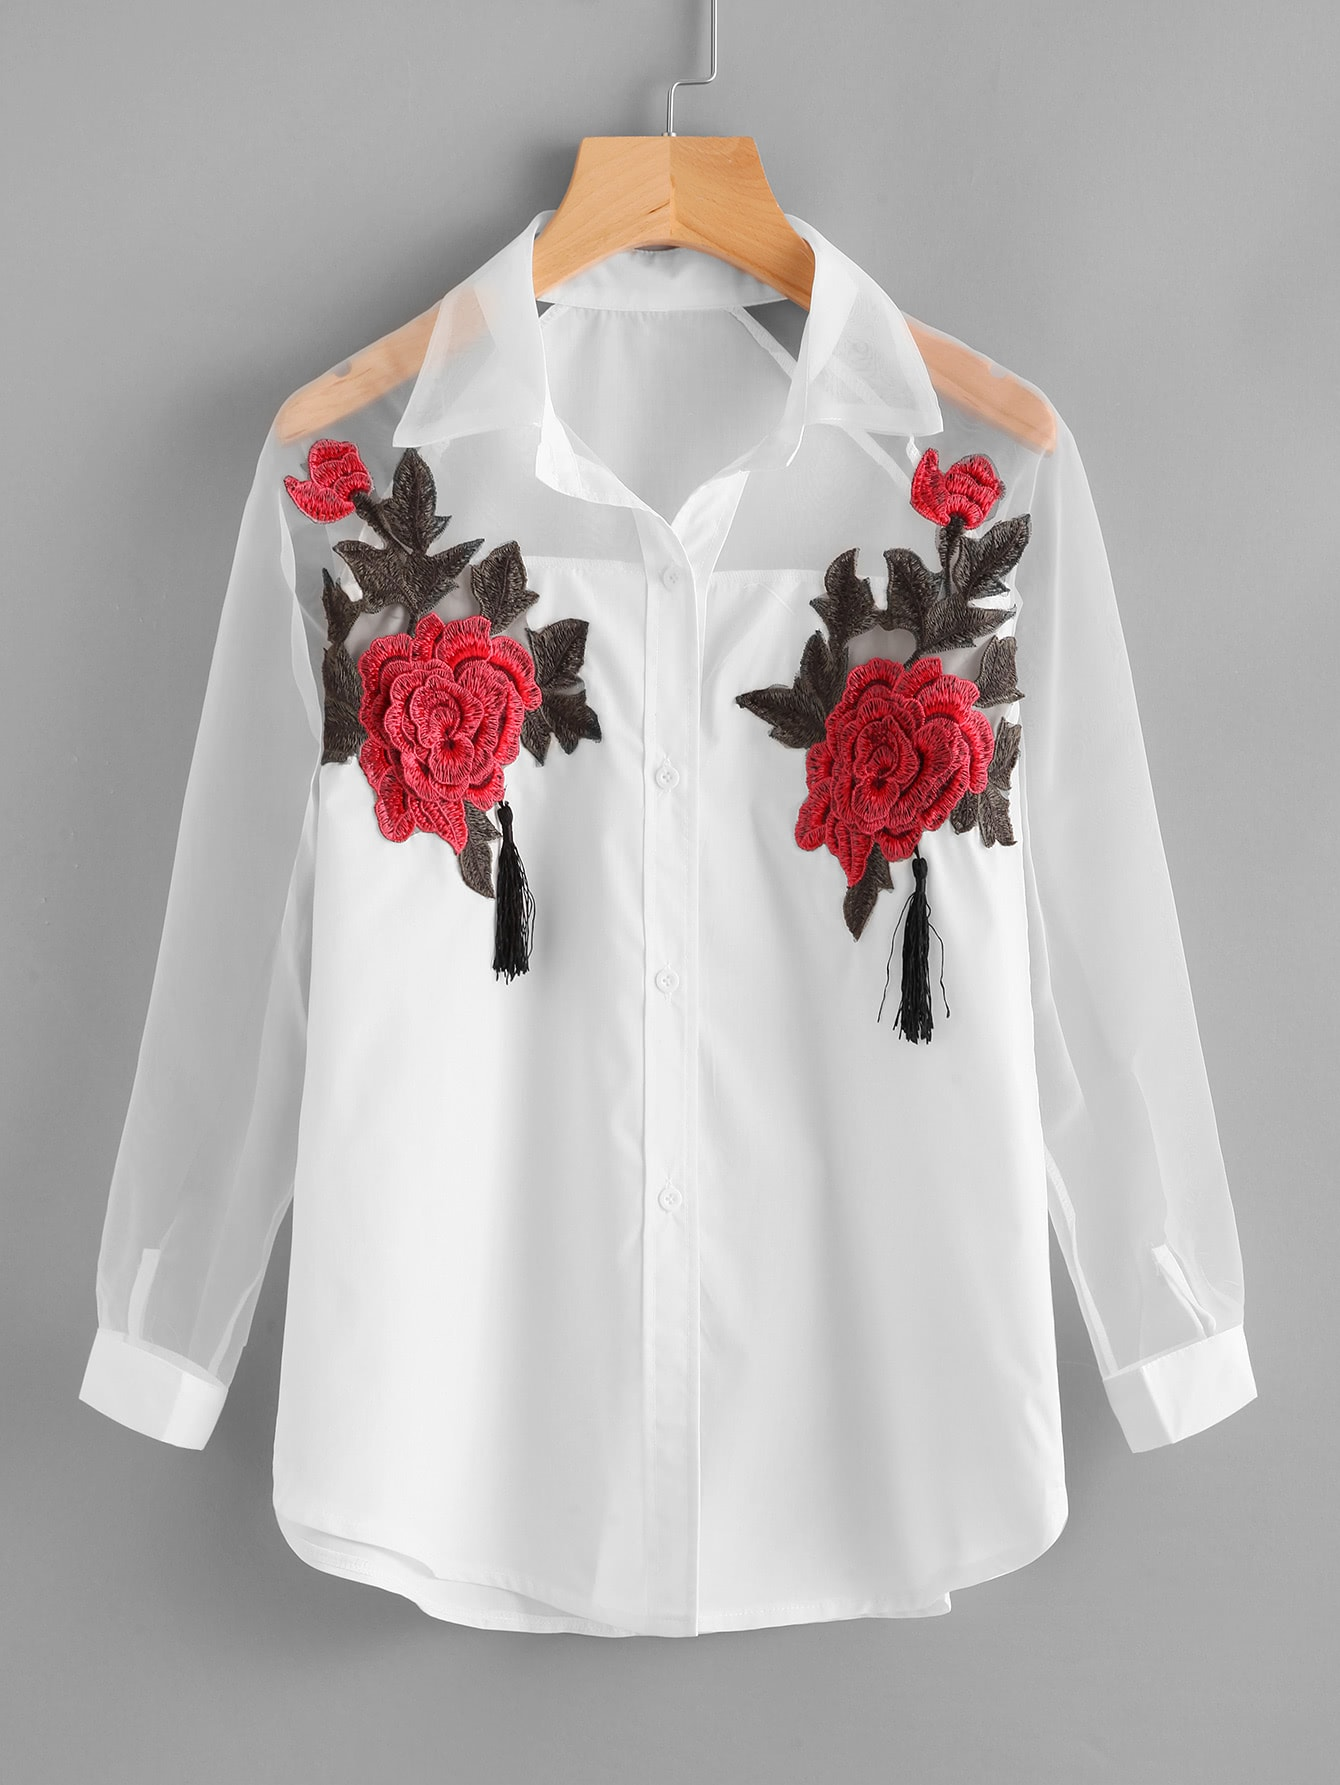 http://it.shein.com/Mesh-Panel-Embroidered-Applique-Shirt-p-373283-cat-1733.html